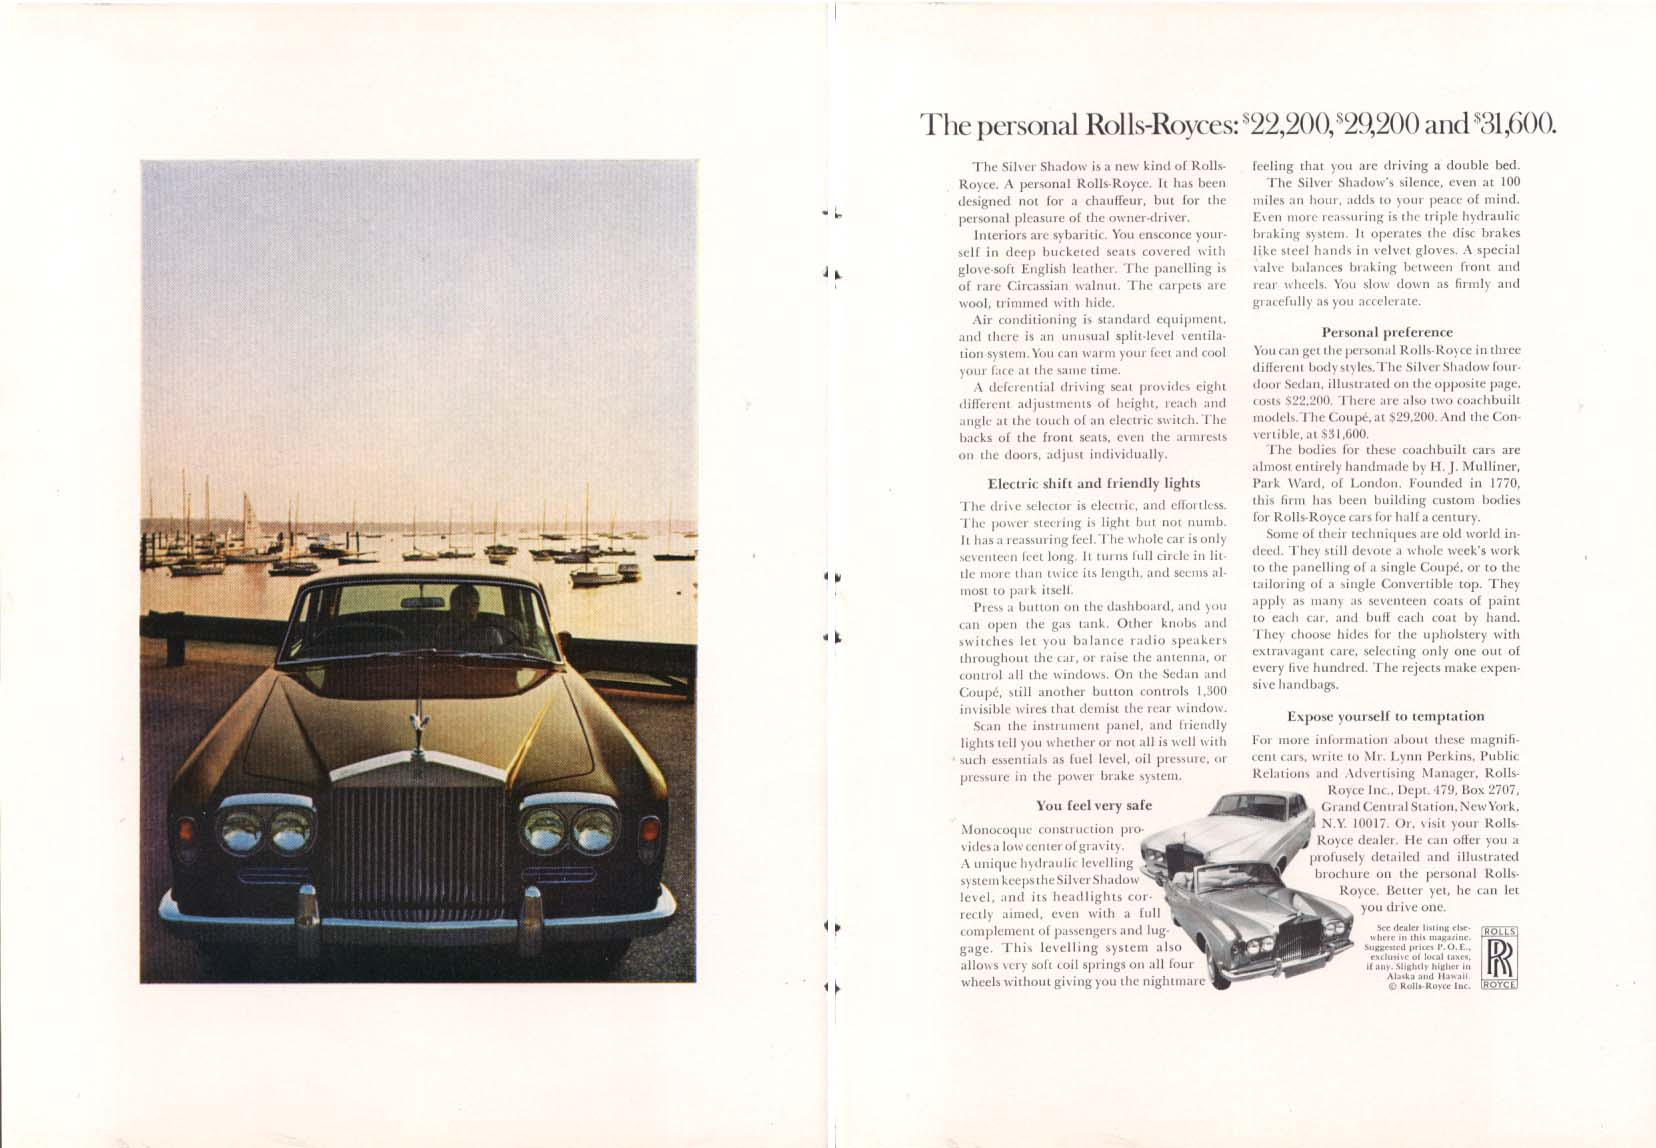 Image for Personal Rolls-Royce $19,600 $22,200 $31,600 ad 1970